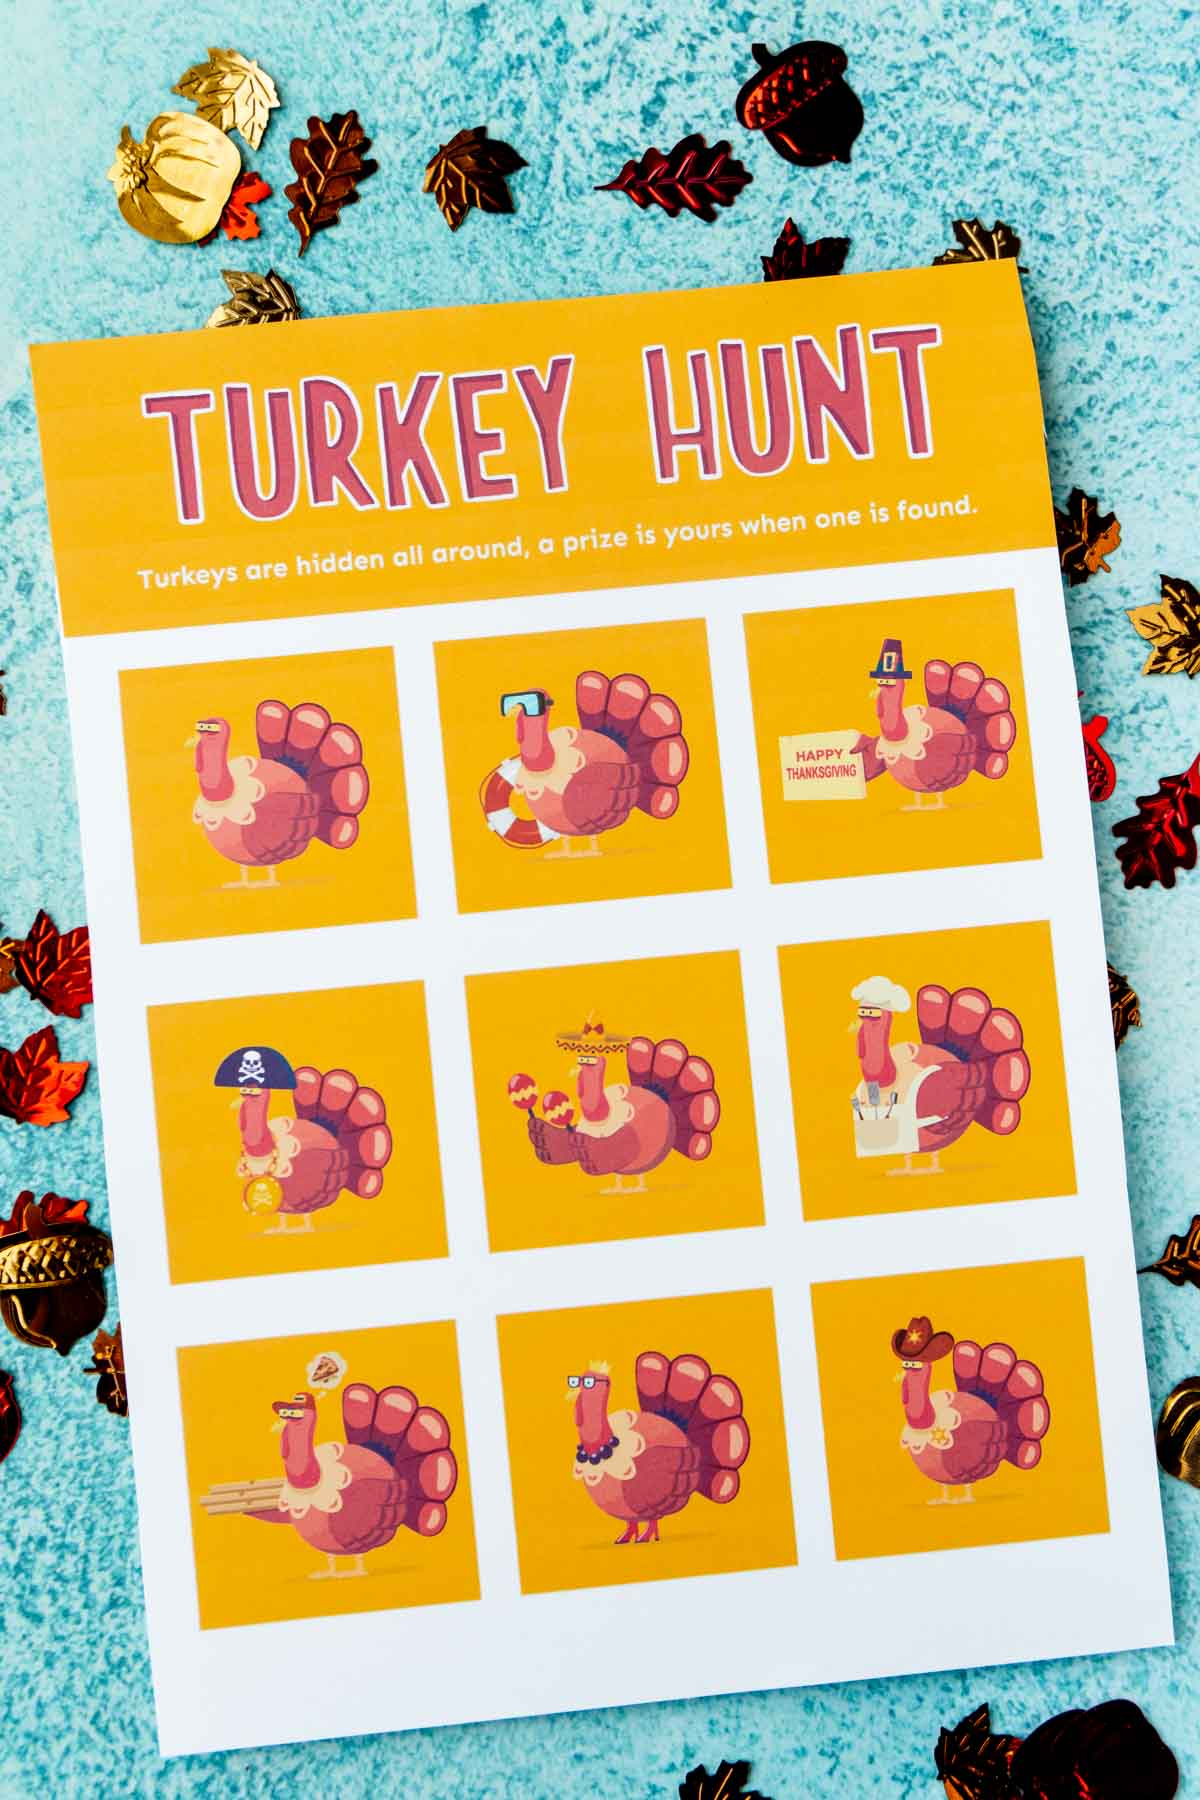 A printed out turkey hunt with turkey images on it